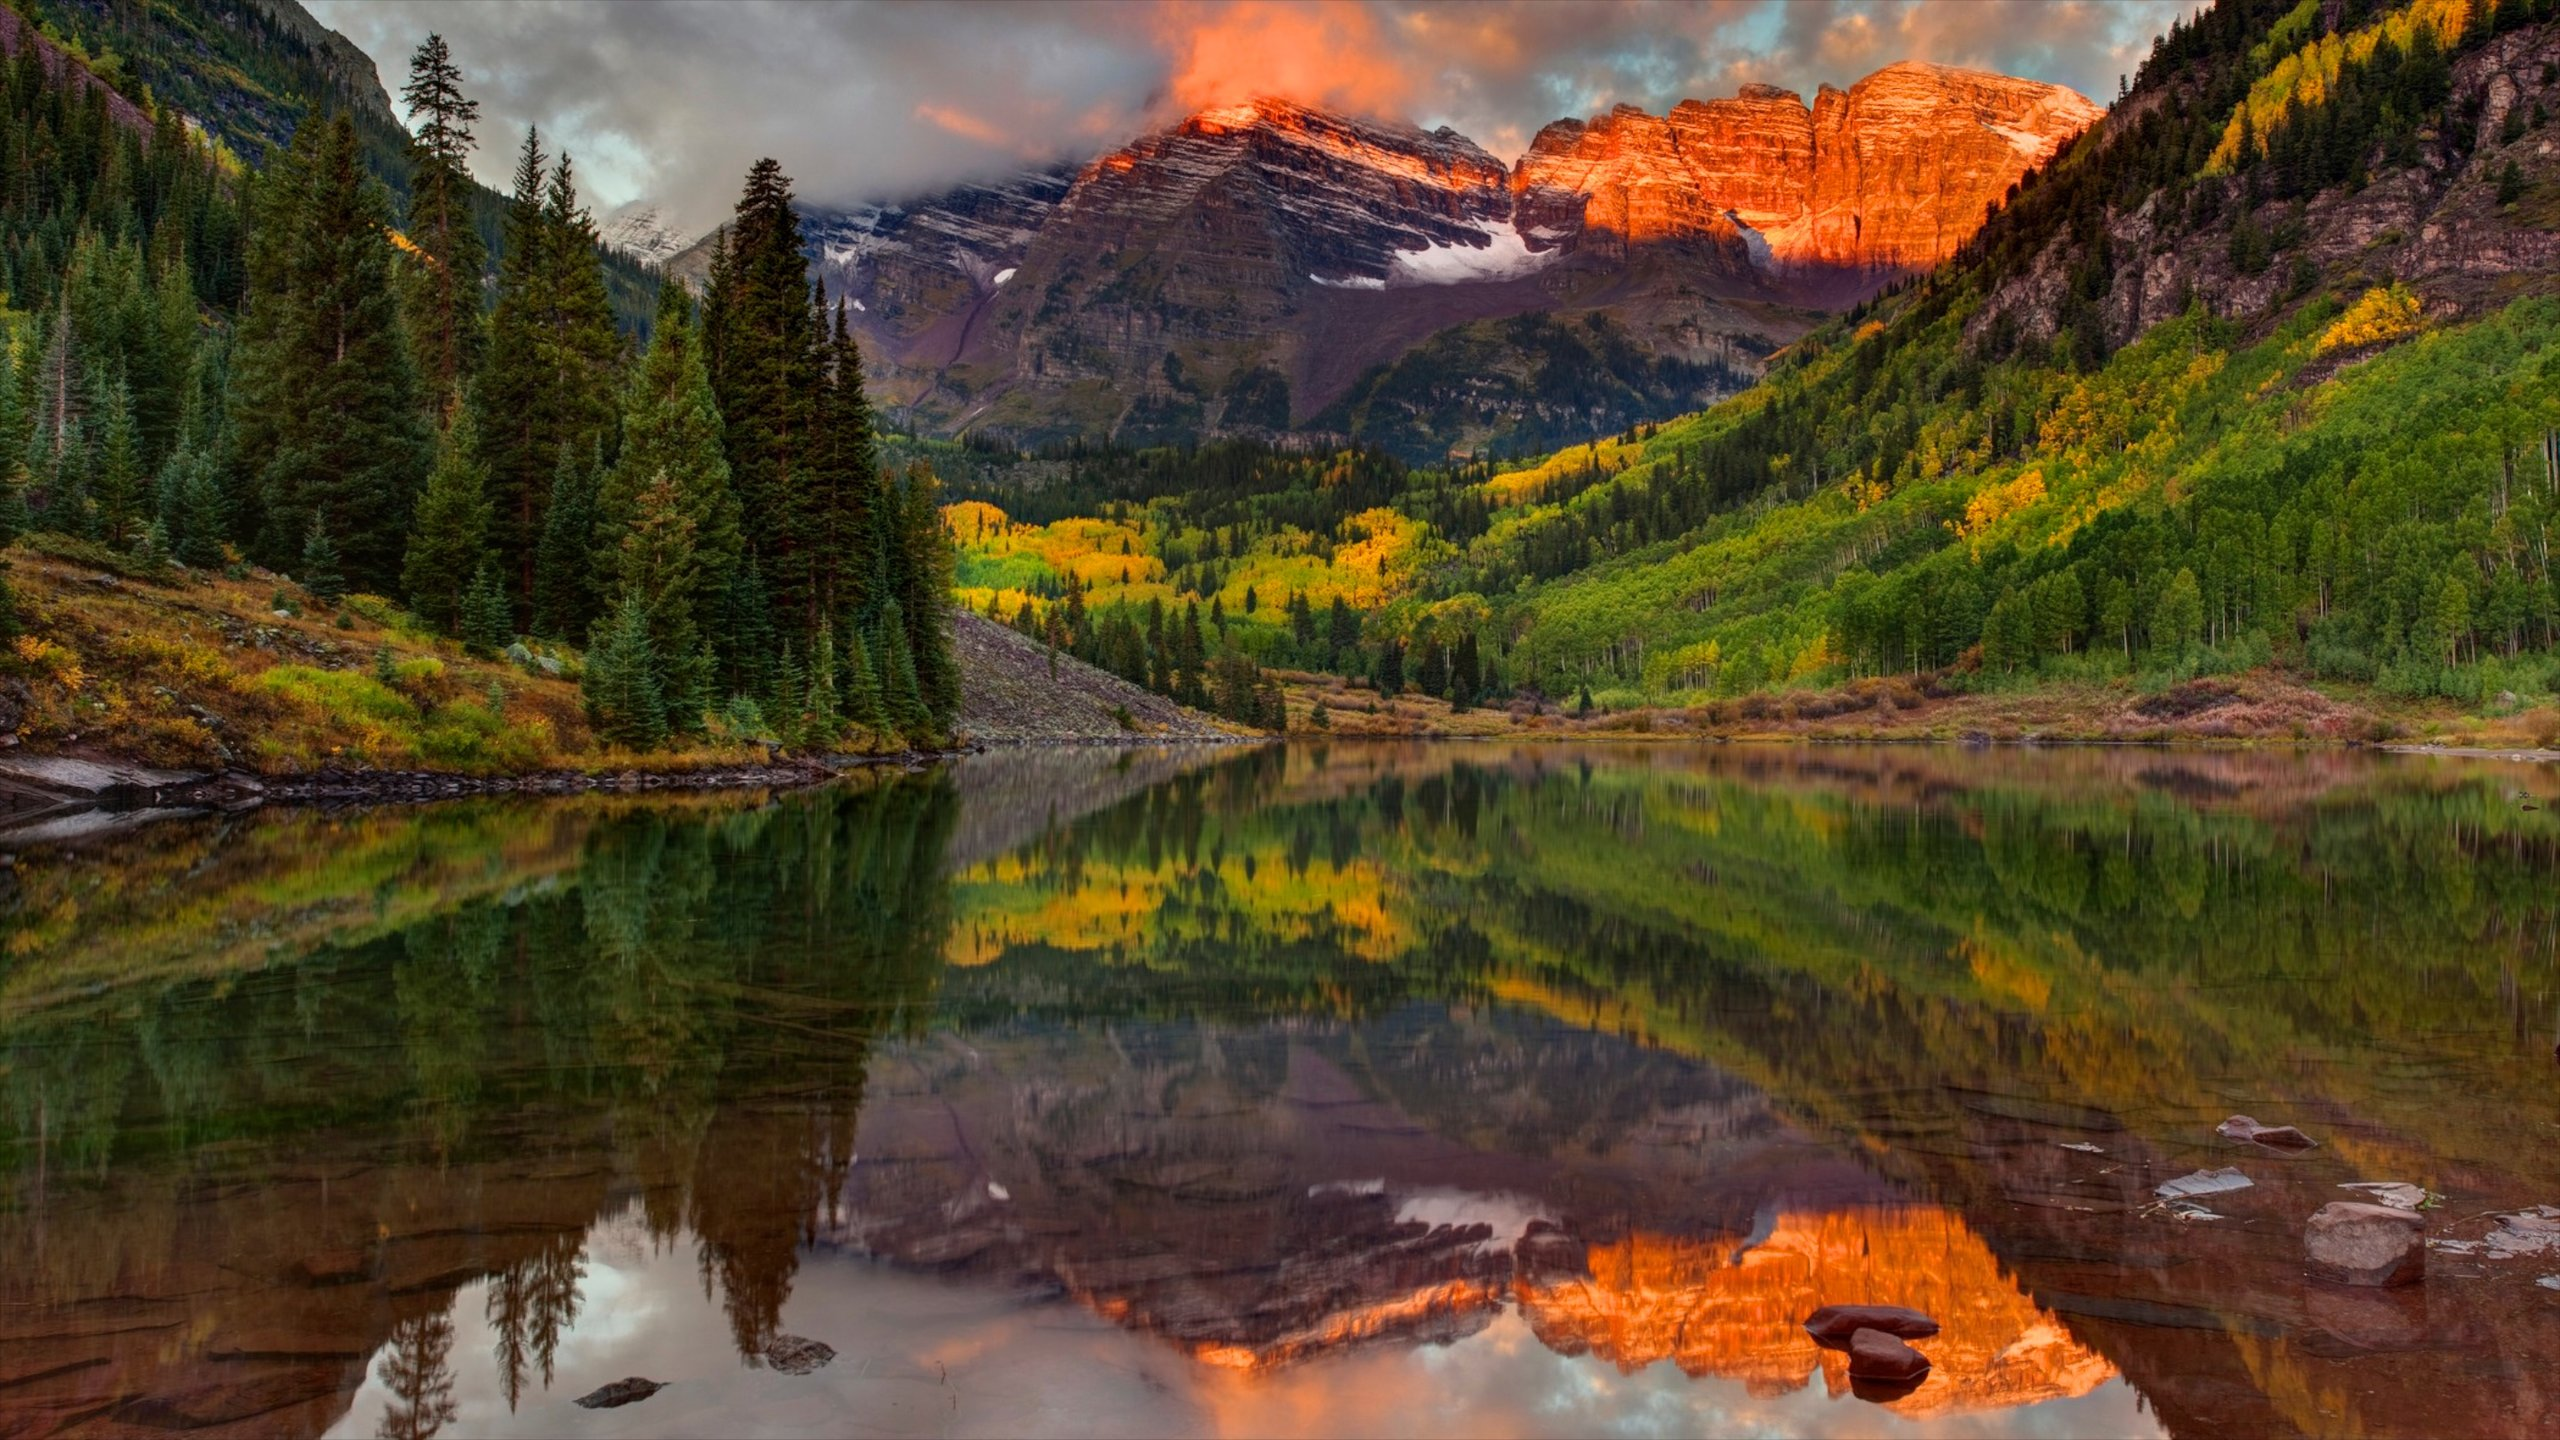 10 Best Hotels Closest to Maroon Bells in Ashcroft for 2019